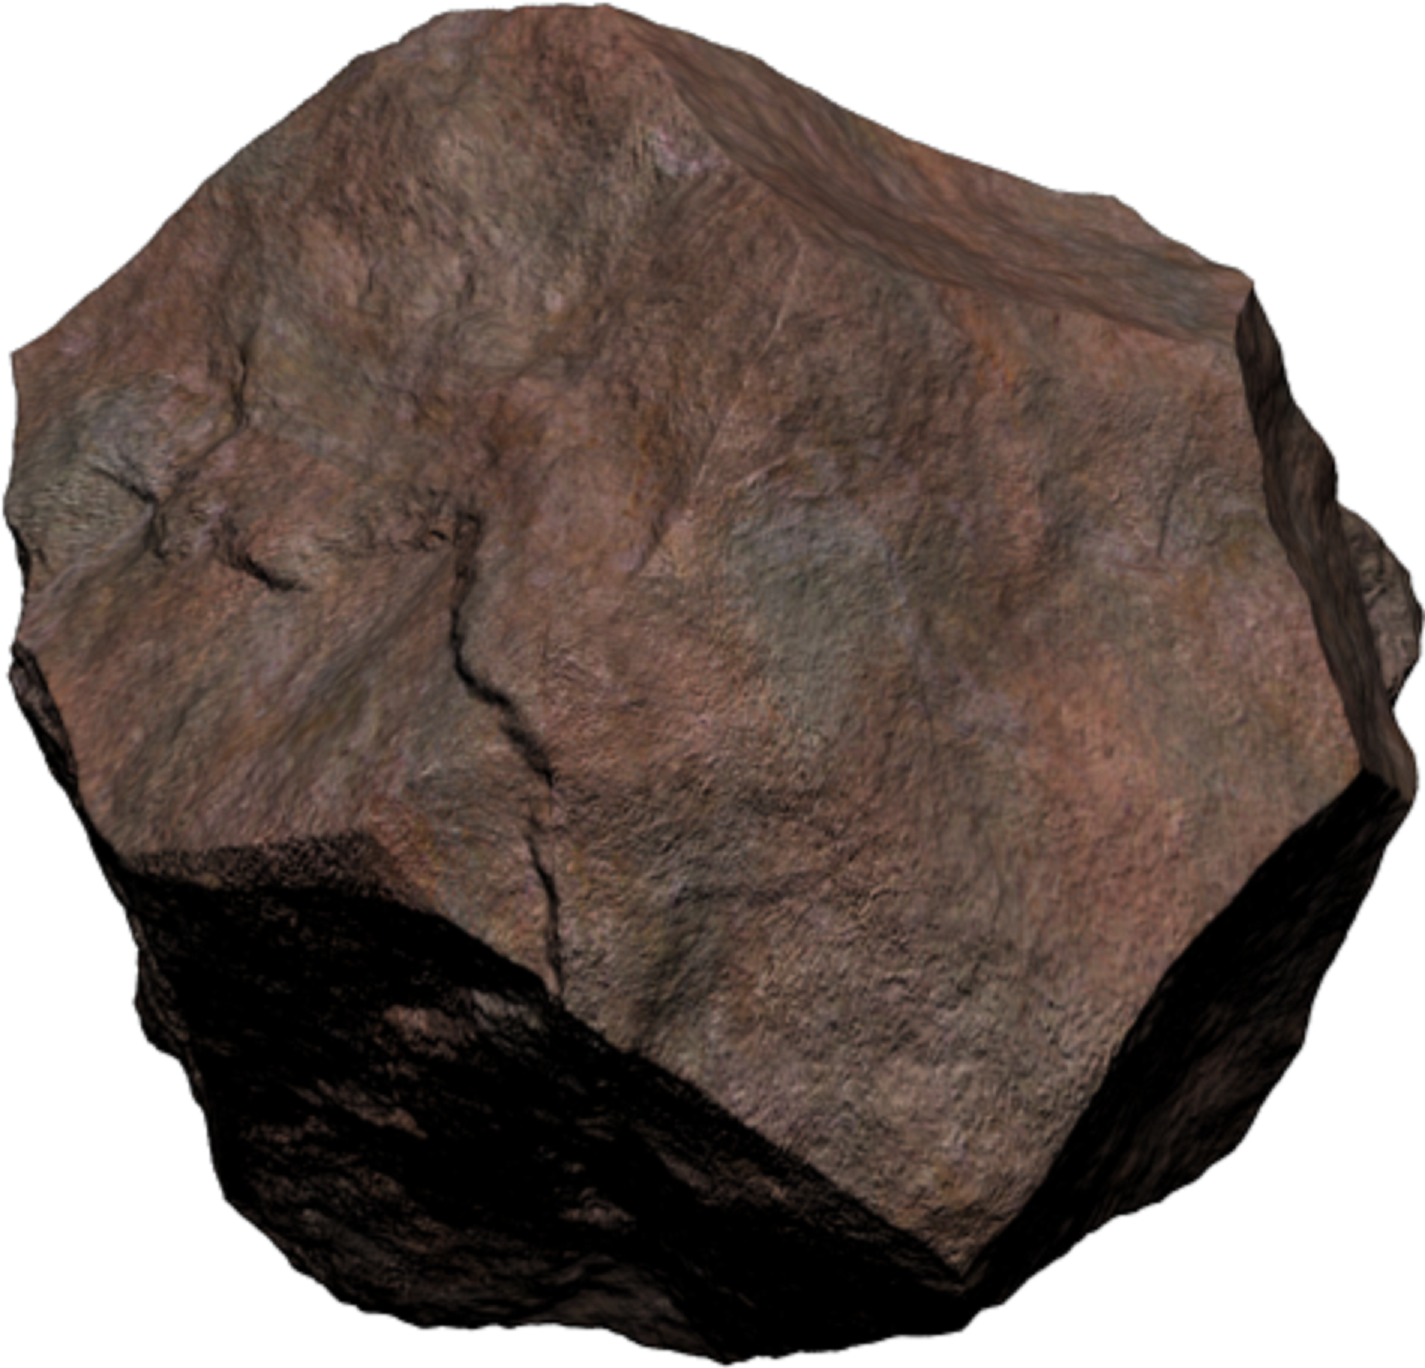 Hard Rock clipart stone And stone Rocks Search Google